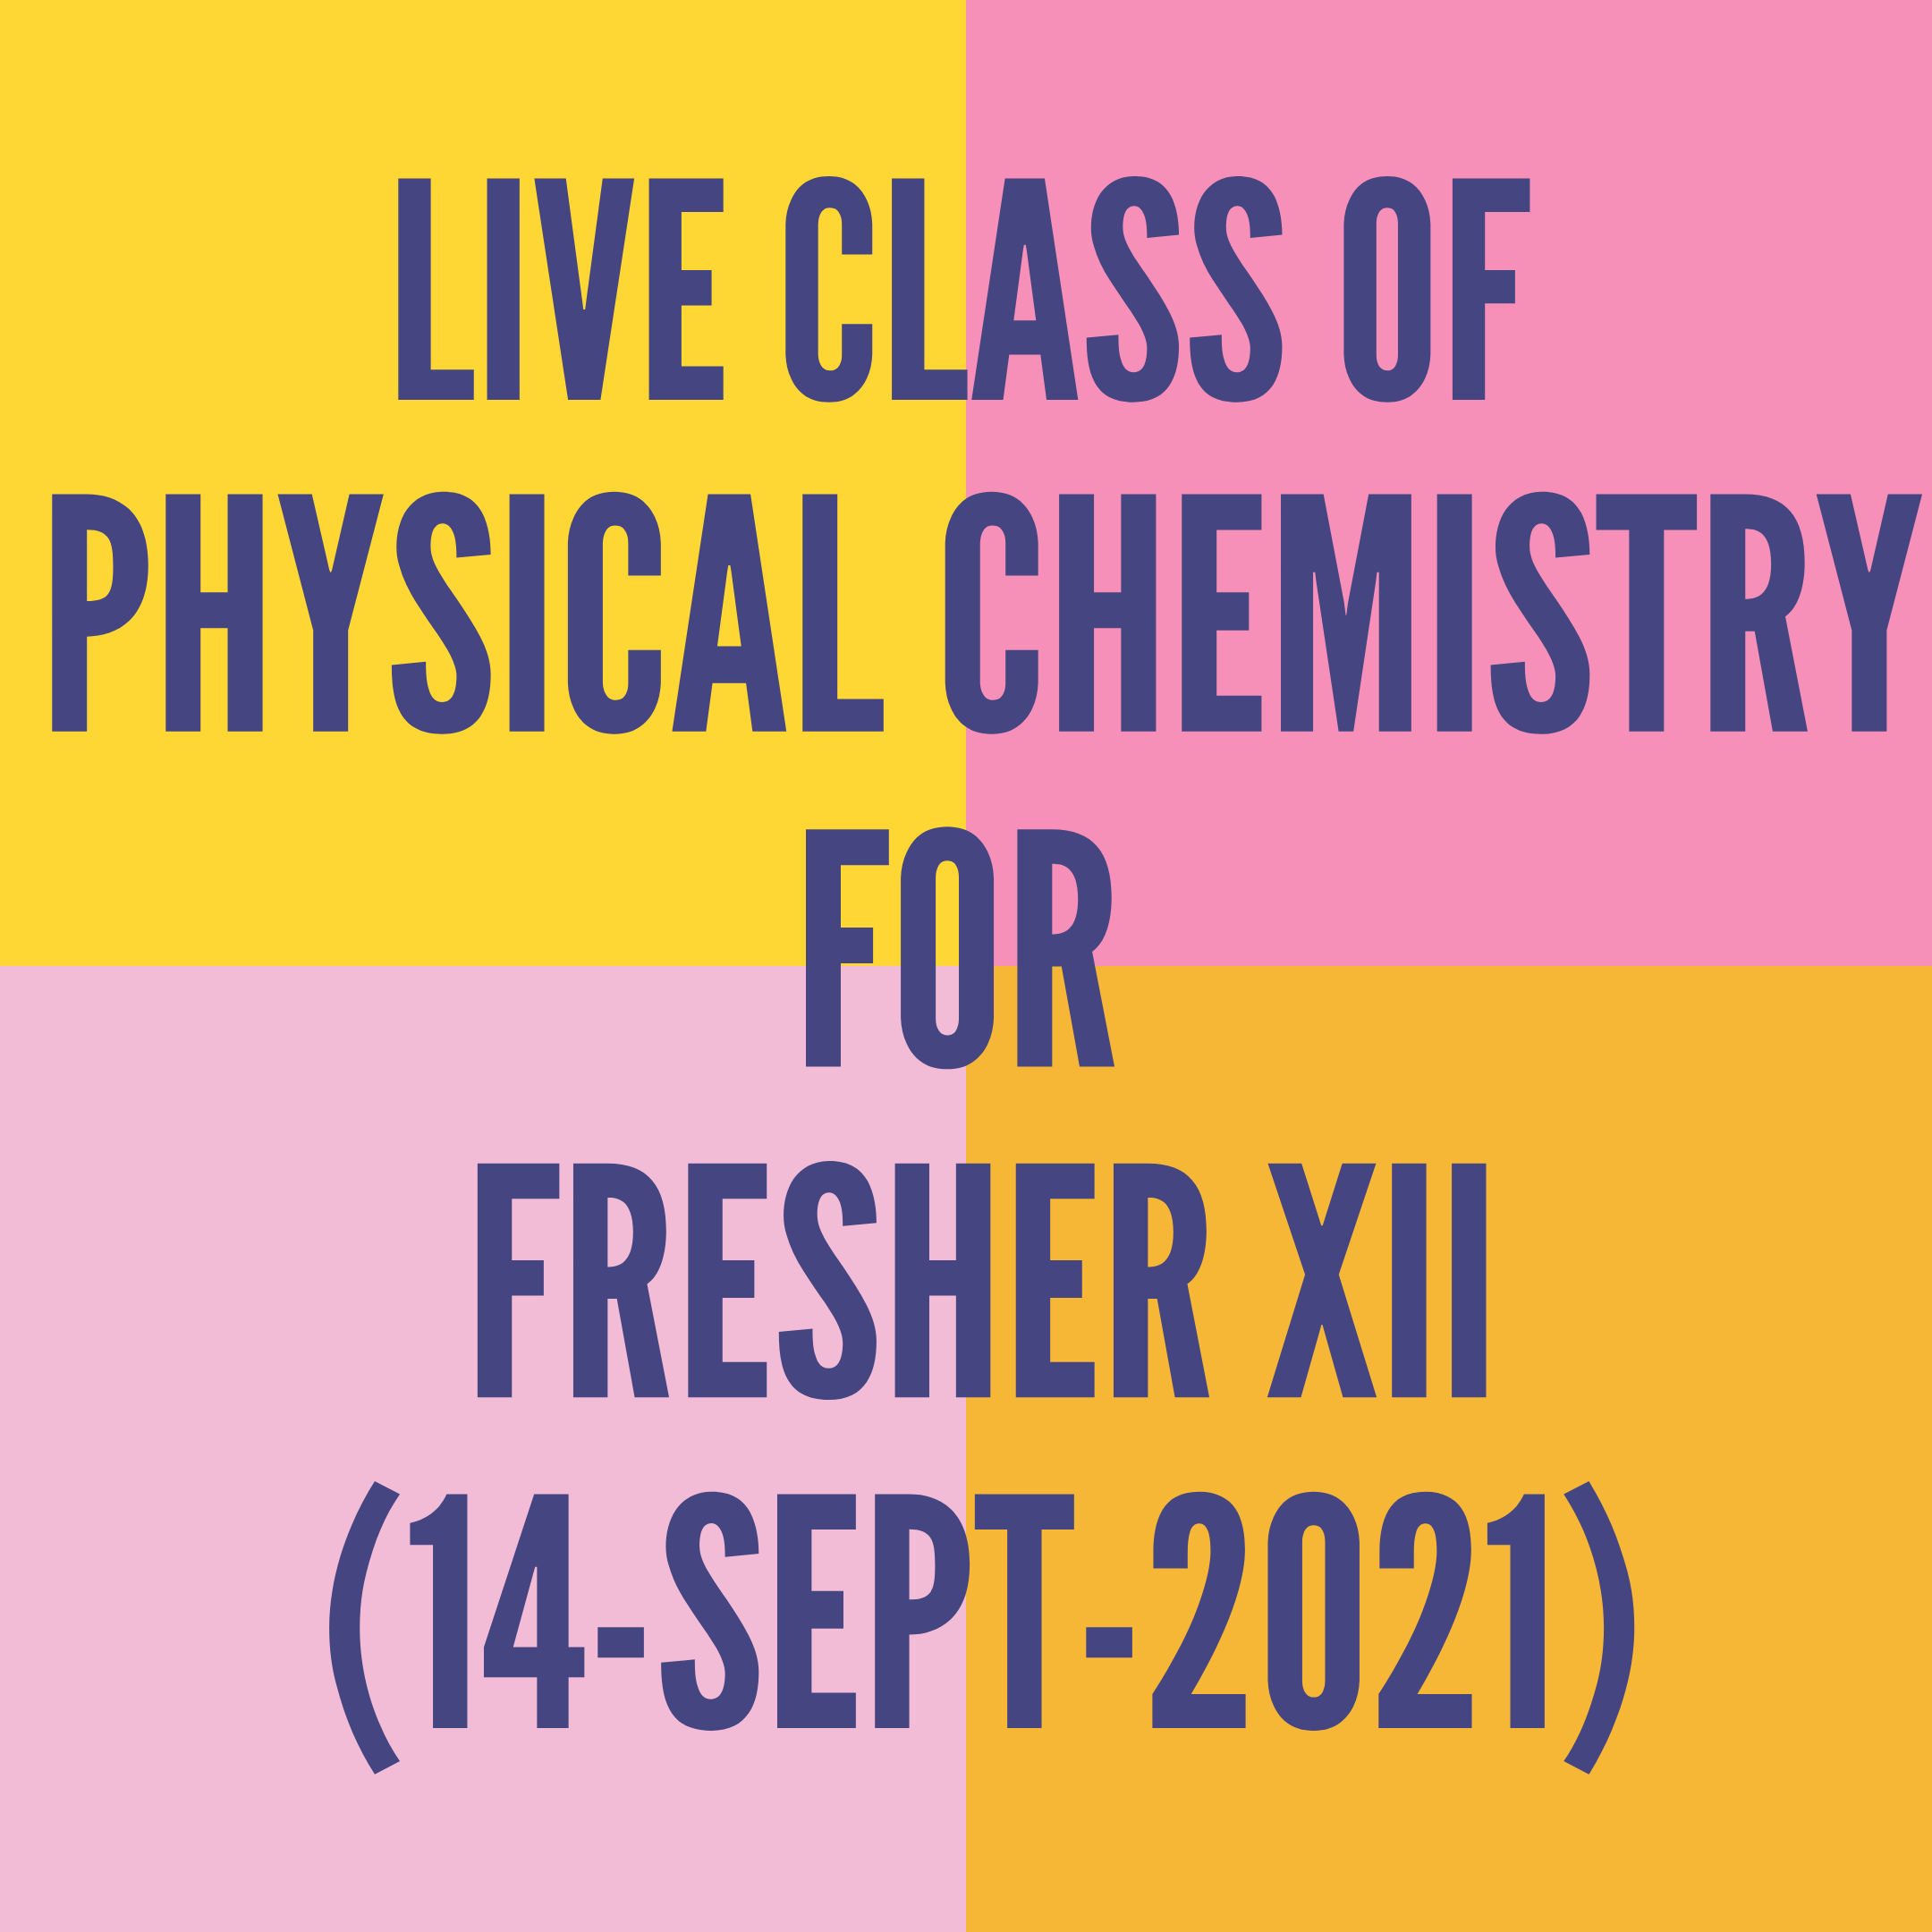 LIVE CLASS OF PHYSICAL CHEMISTRY FOR FRESHER XII (14-SEPT-2021) SOLID STATE